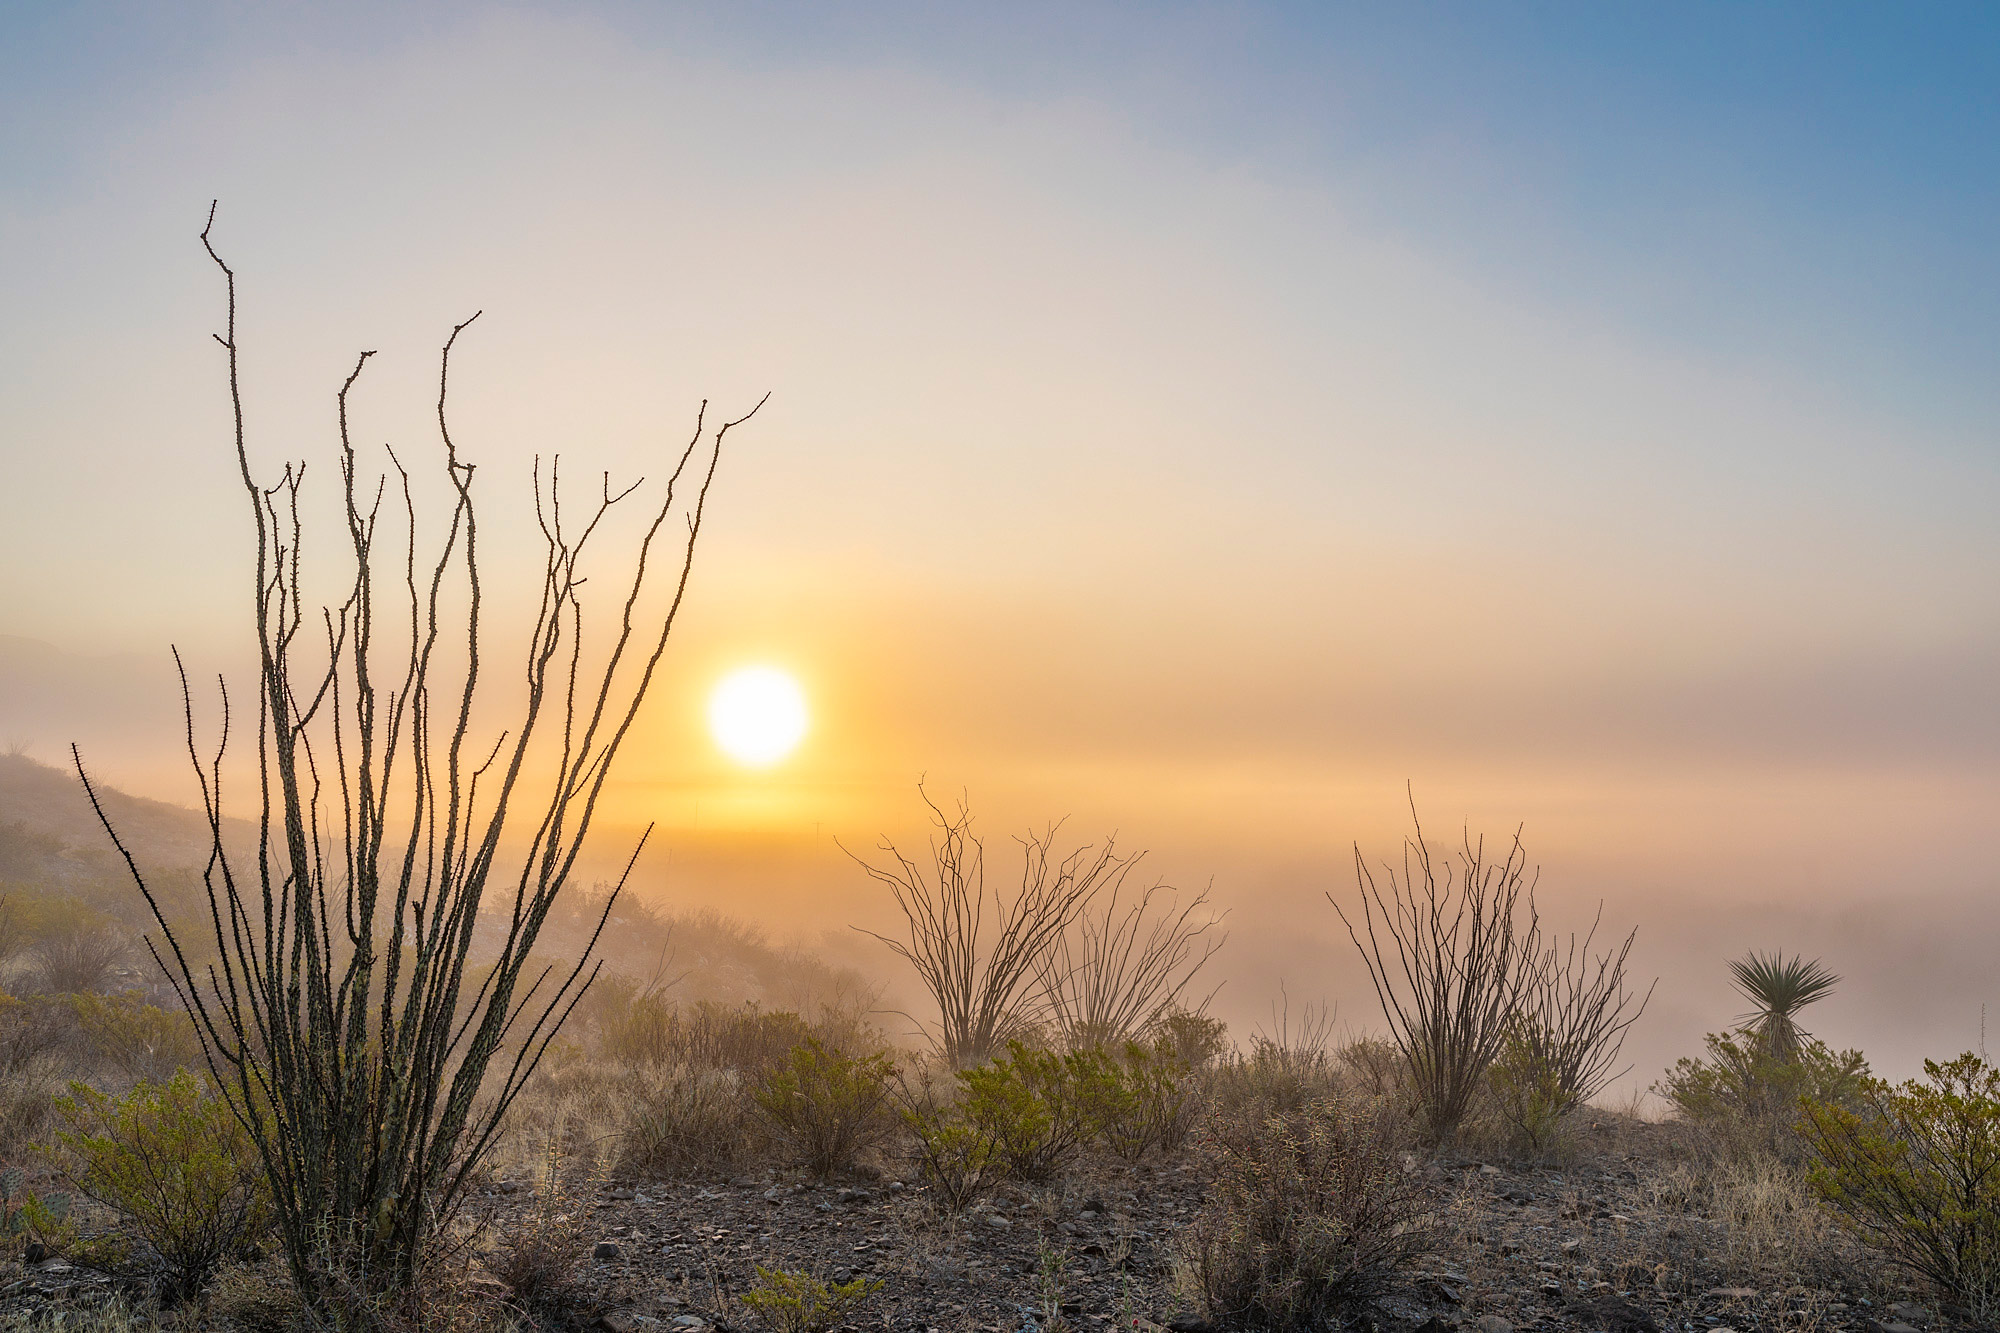 Sunrise over Rio Grande Valley - Big Bend Ranch State Park